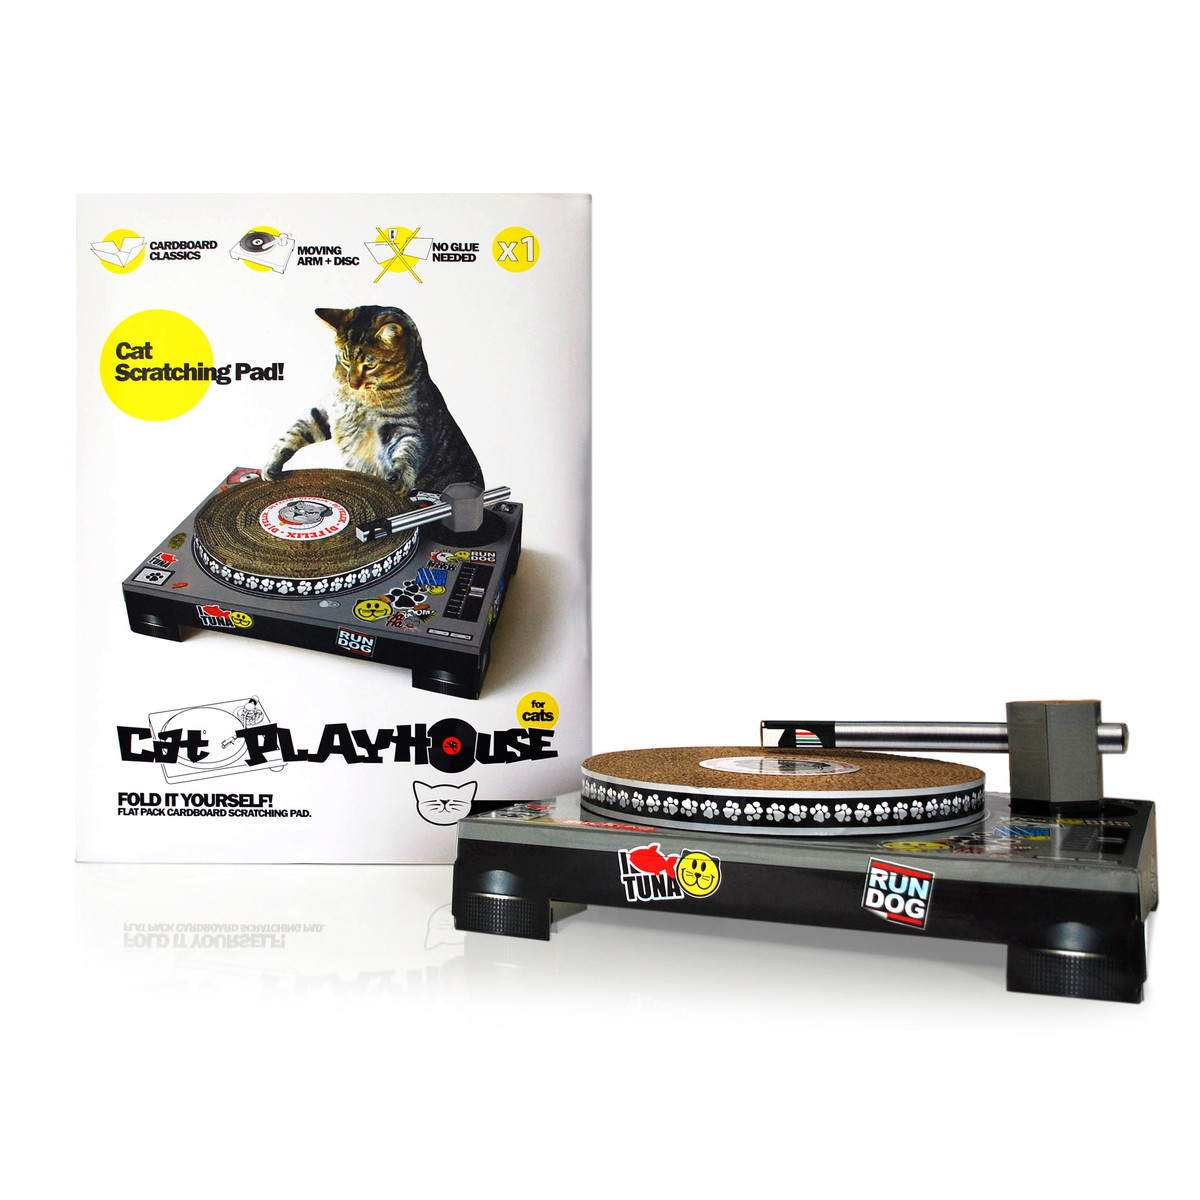 Fun scratching pad for you and your cat - time to unleash DJ Kitty with this spin on the traditional scratcher (pun intended).